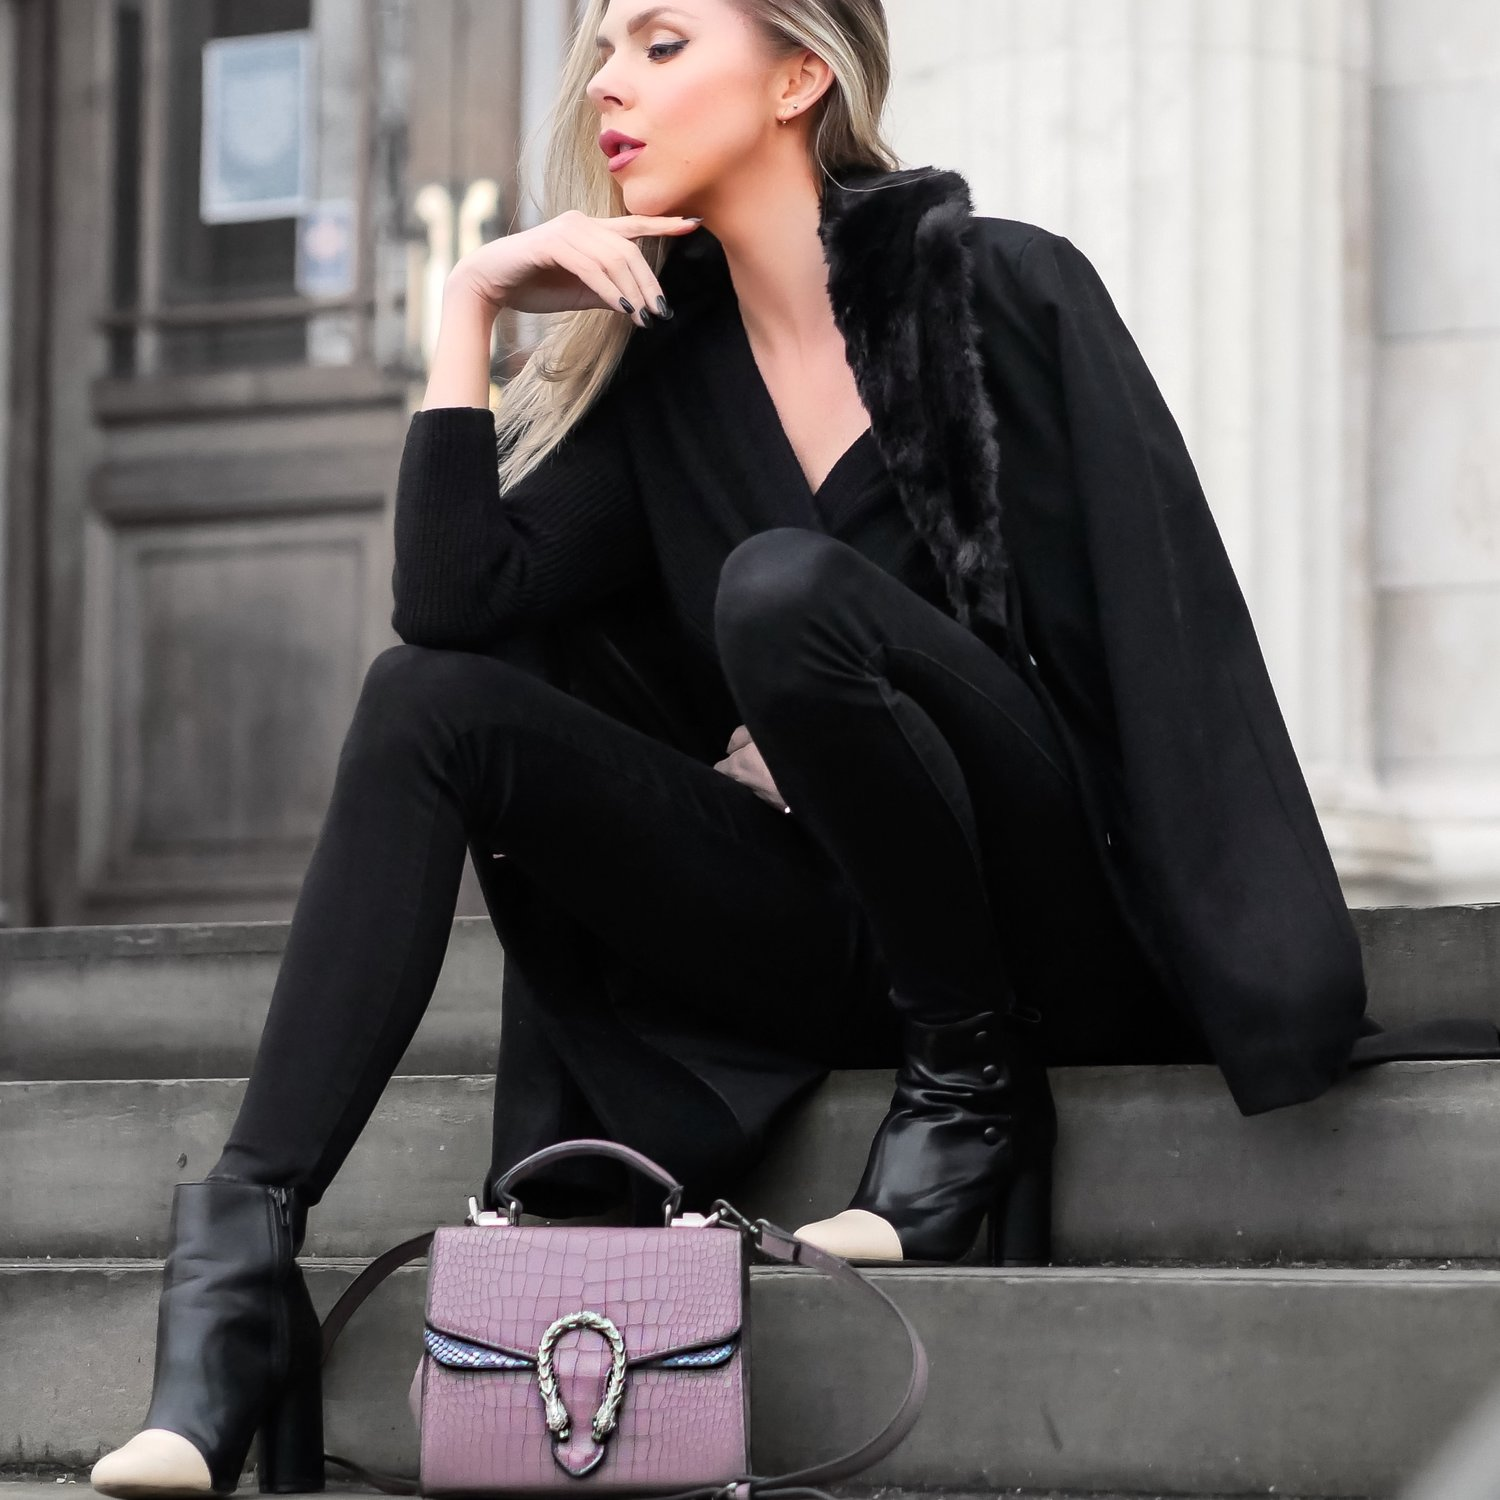 haul, affordable fashion, strretstyle, inspiration, what to wear, fashion, lookbook, style, fashion blogger, laura blair, youtuber, london fashion girl